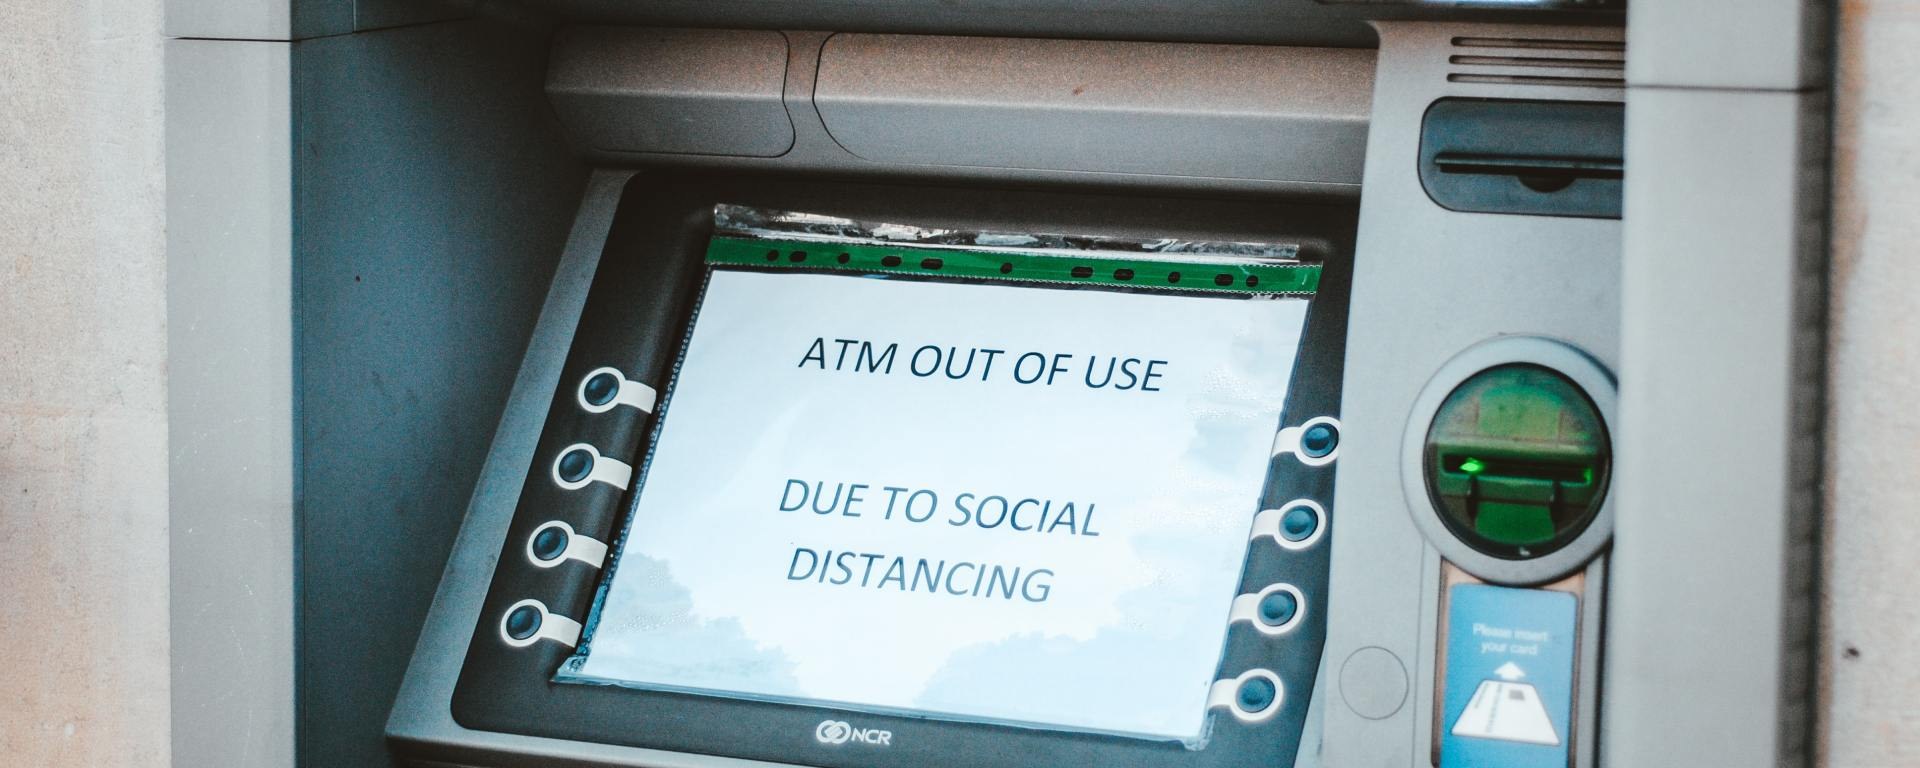 Out of use ATM machine